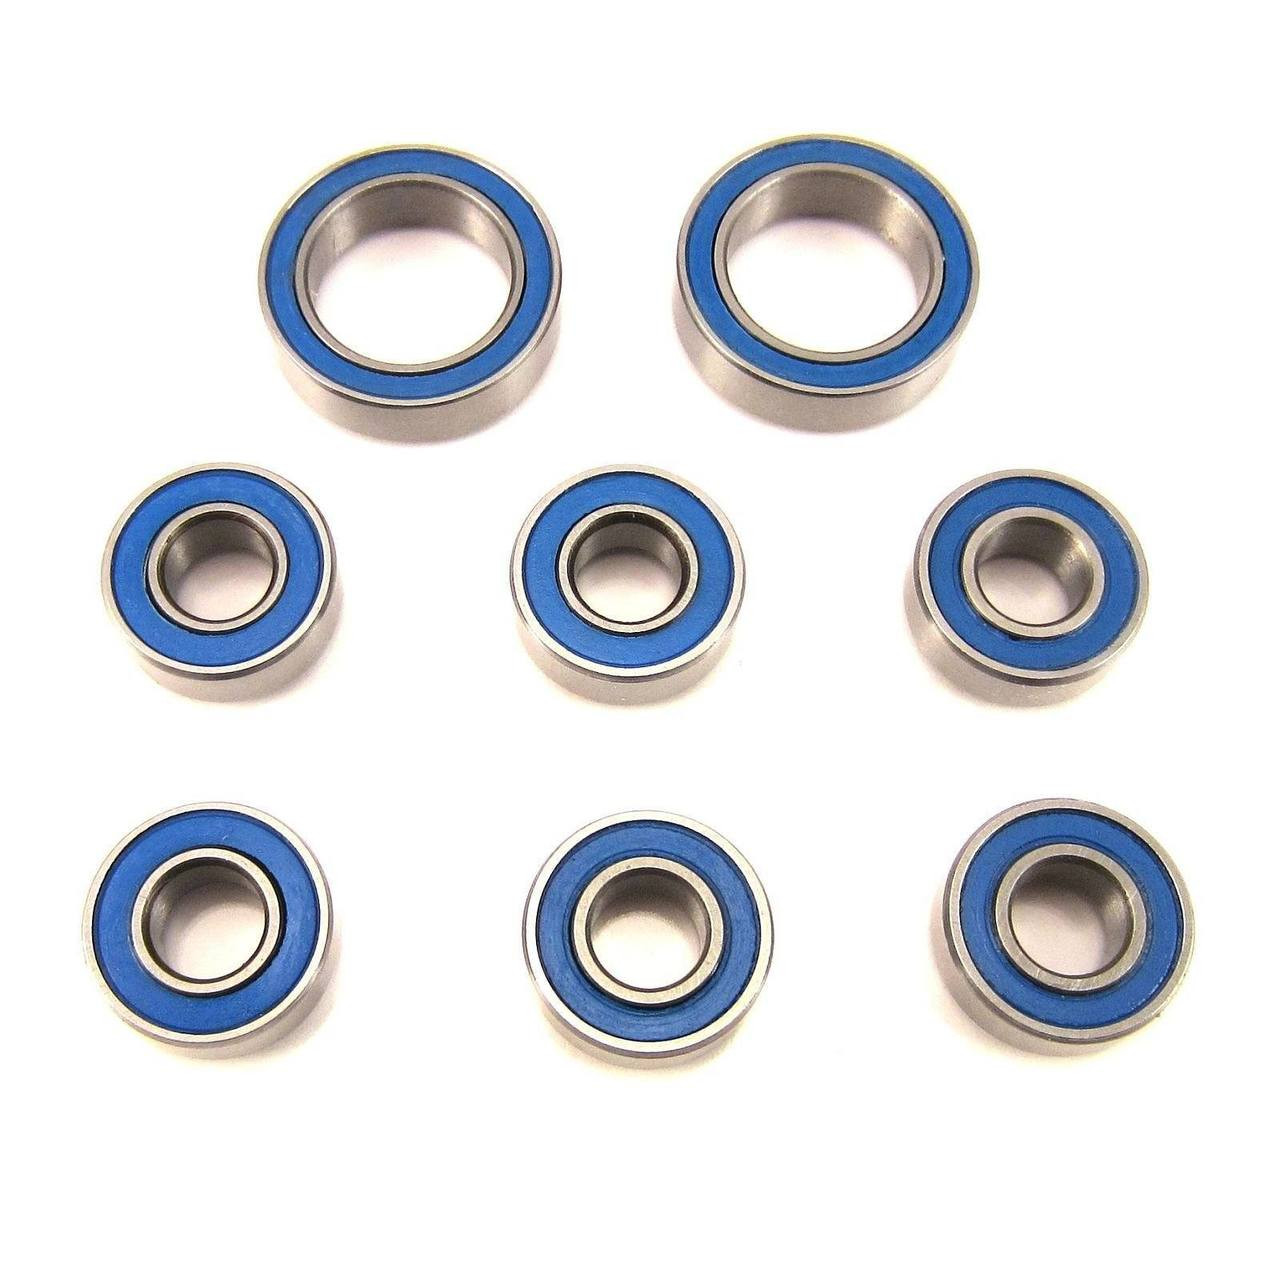 TRB RC Wheel-Axle Bearings Set BLU 5x11x4mm-10x15x4mm Axial SCX10 Wraith AX10